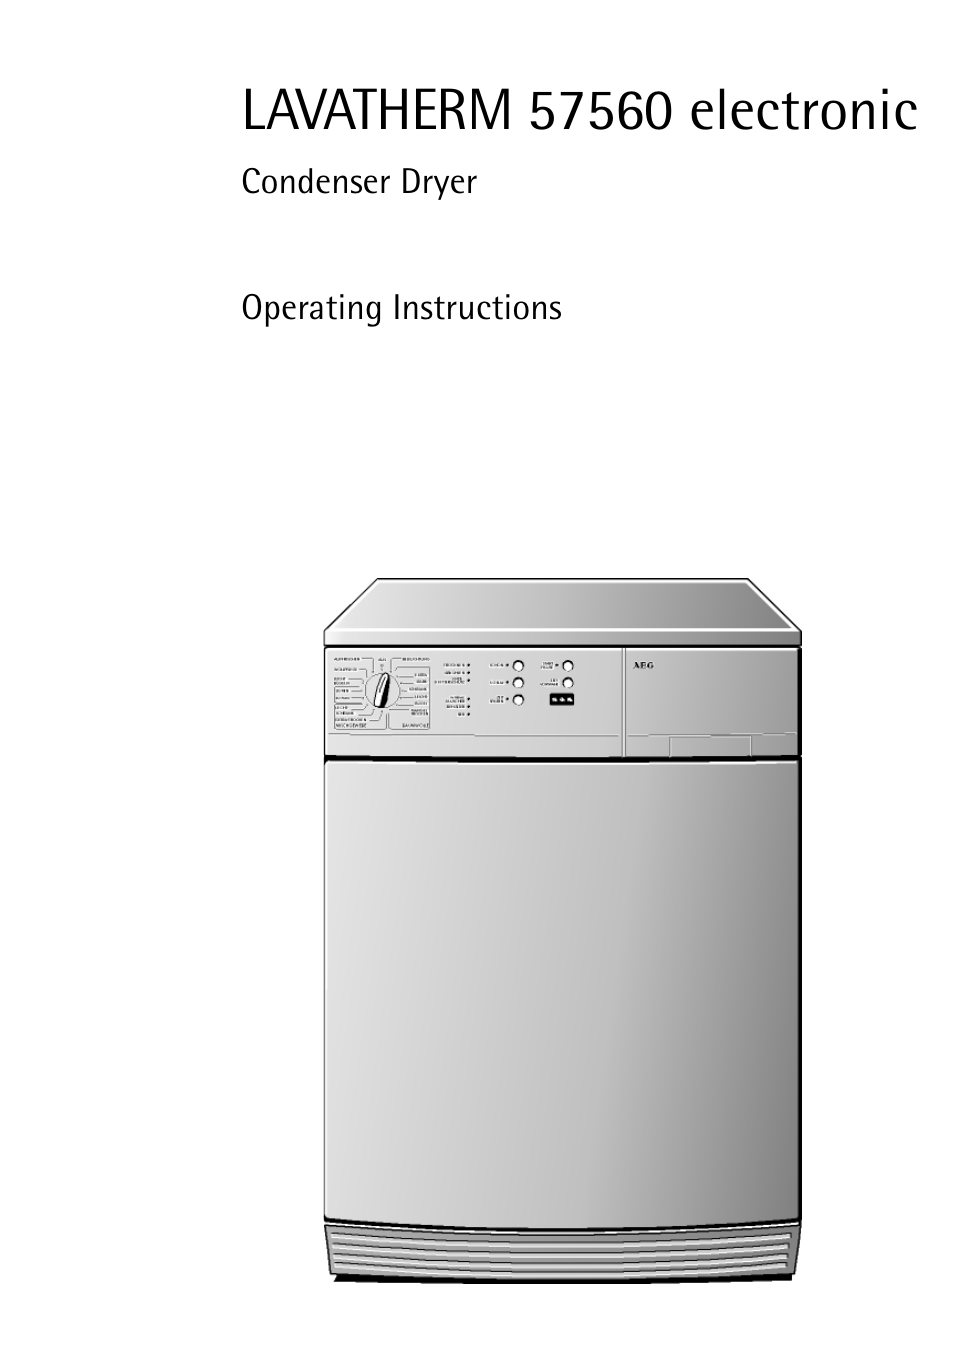 electrolux lavatherm 57560 user manual 40 pages rh manualsdir com aeg electrolux lavatherm dryer manual aeg electrolux lavatherm dryer manual